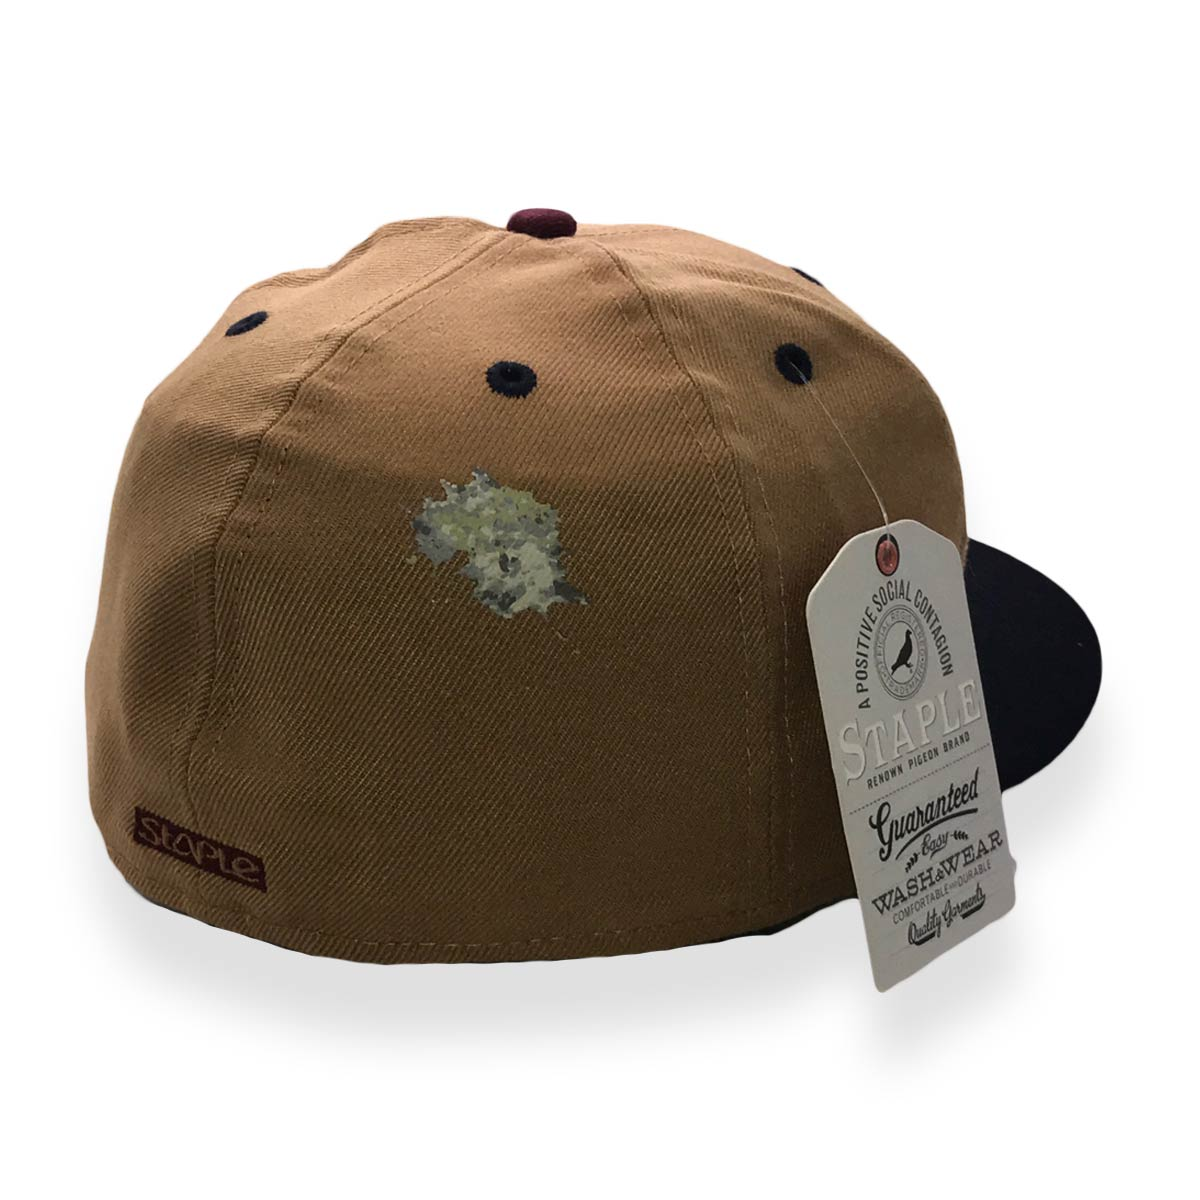 STAPLE X NEW ERA PIGEON 59FIFTY TAN MENS FITTED CAP - Last one left ... 990775aefce2